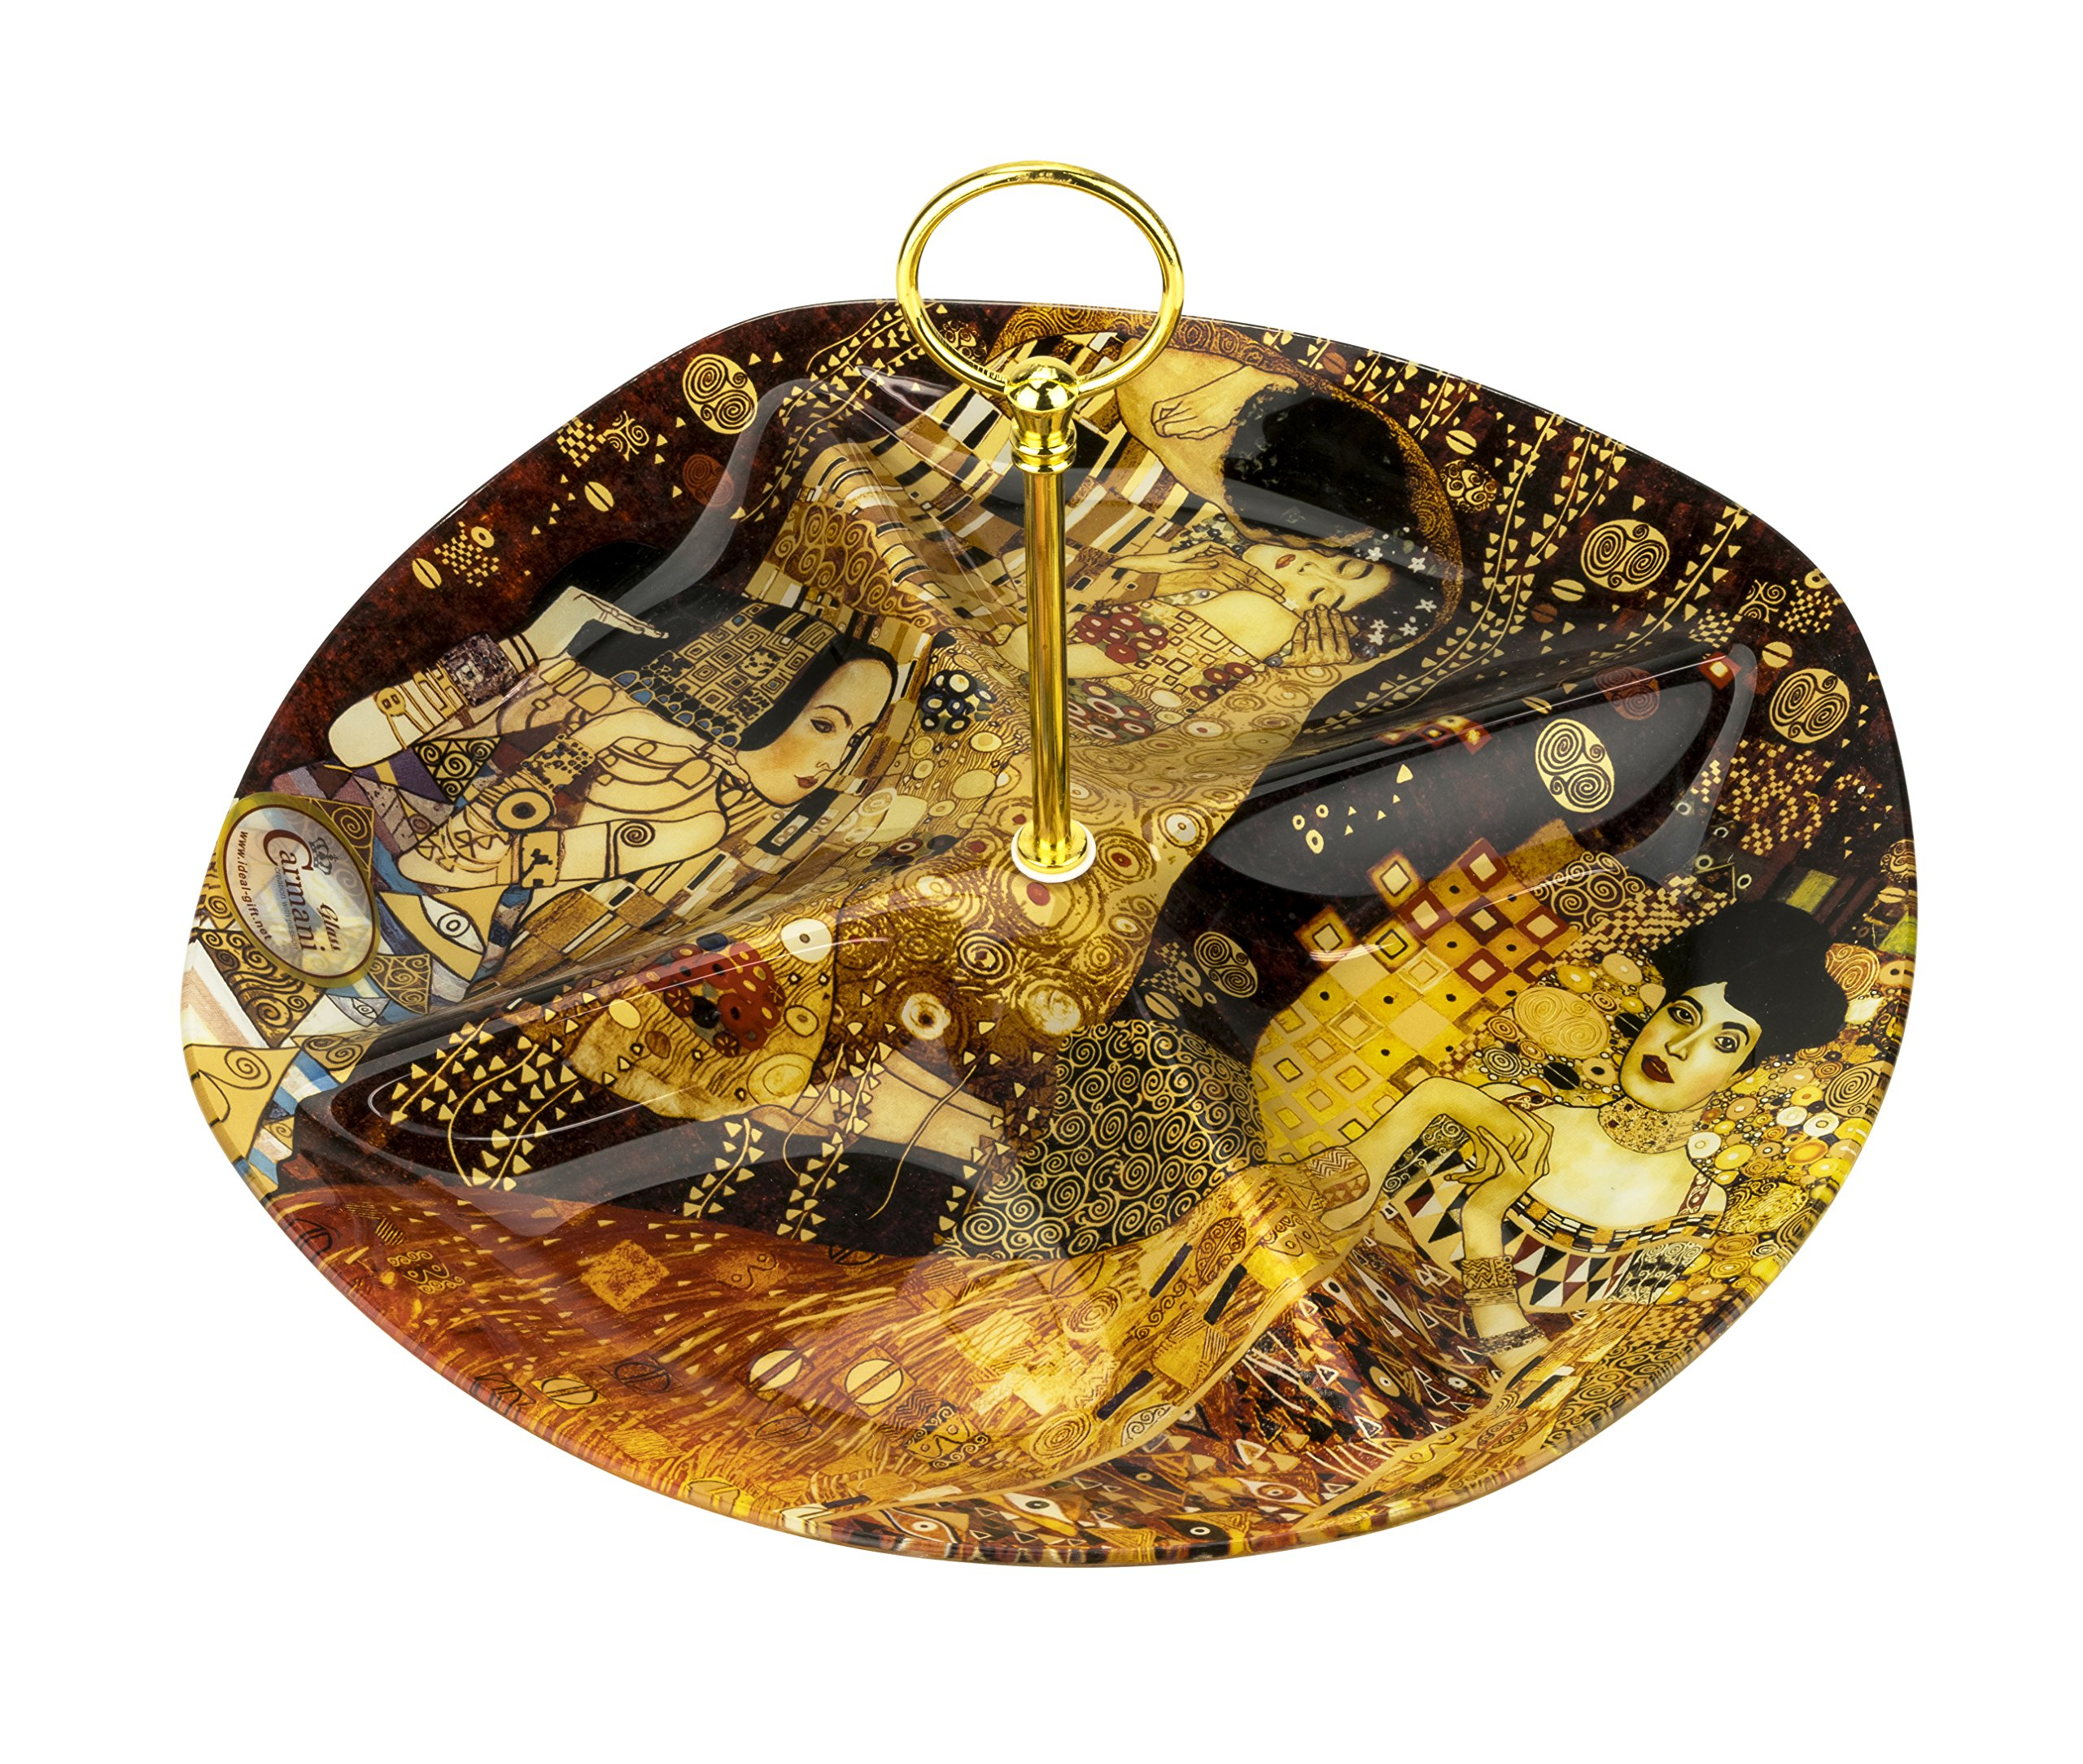 Carmani 13 x 13-Inch Decorative Glass Tray with Gustav Klimt Paintings Print, Collectible Home Decor Serving Dish with Golden Handle, Decorative Fruit/Appetizers Centerpiece Platter, Gift Box